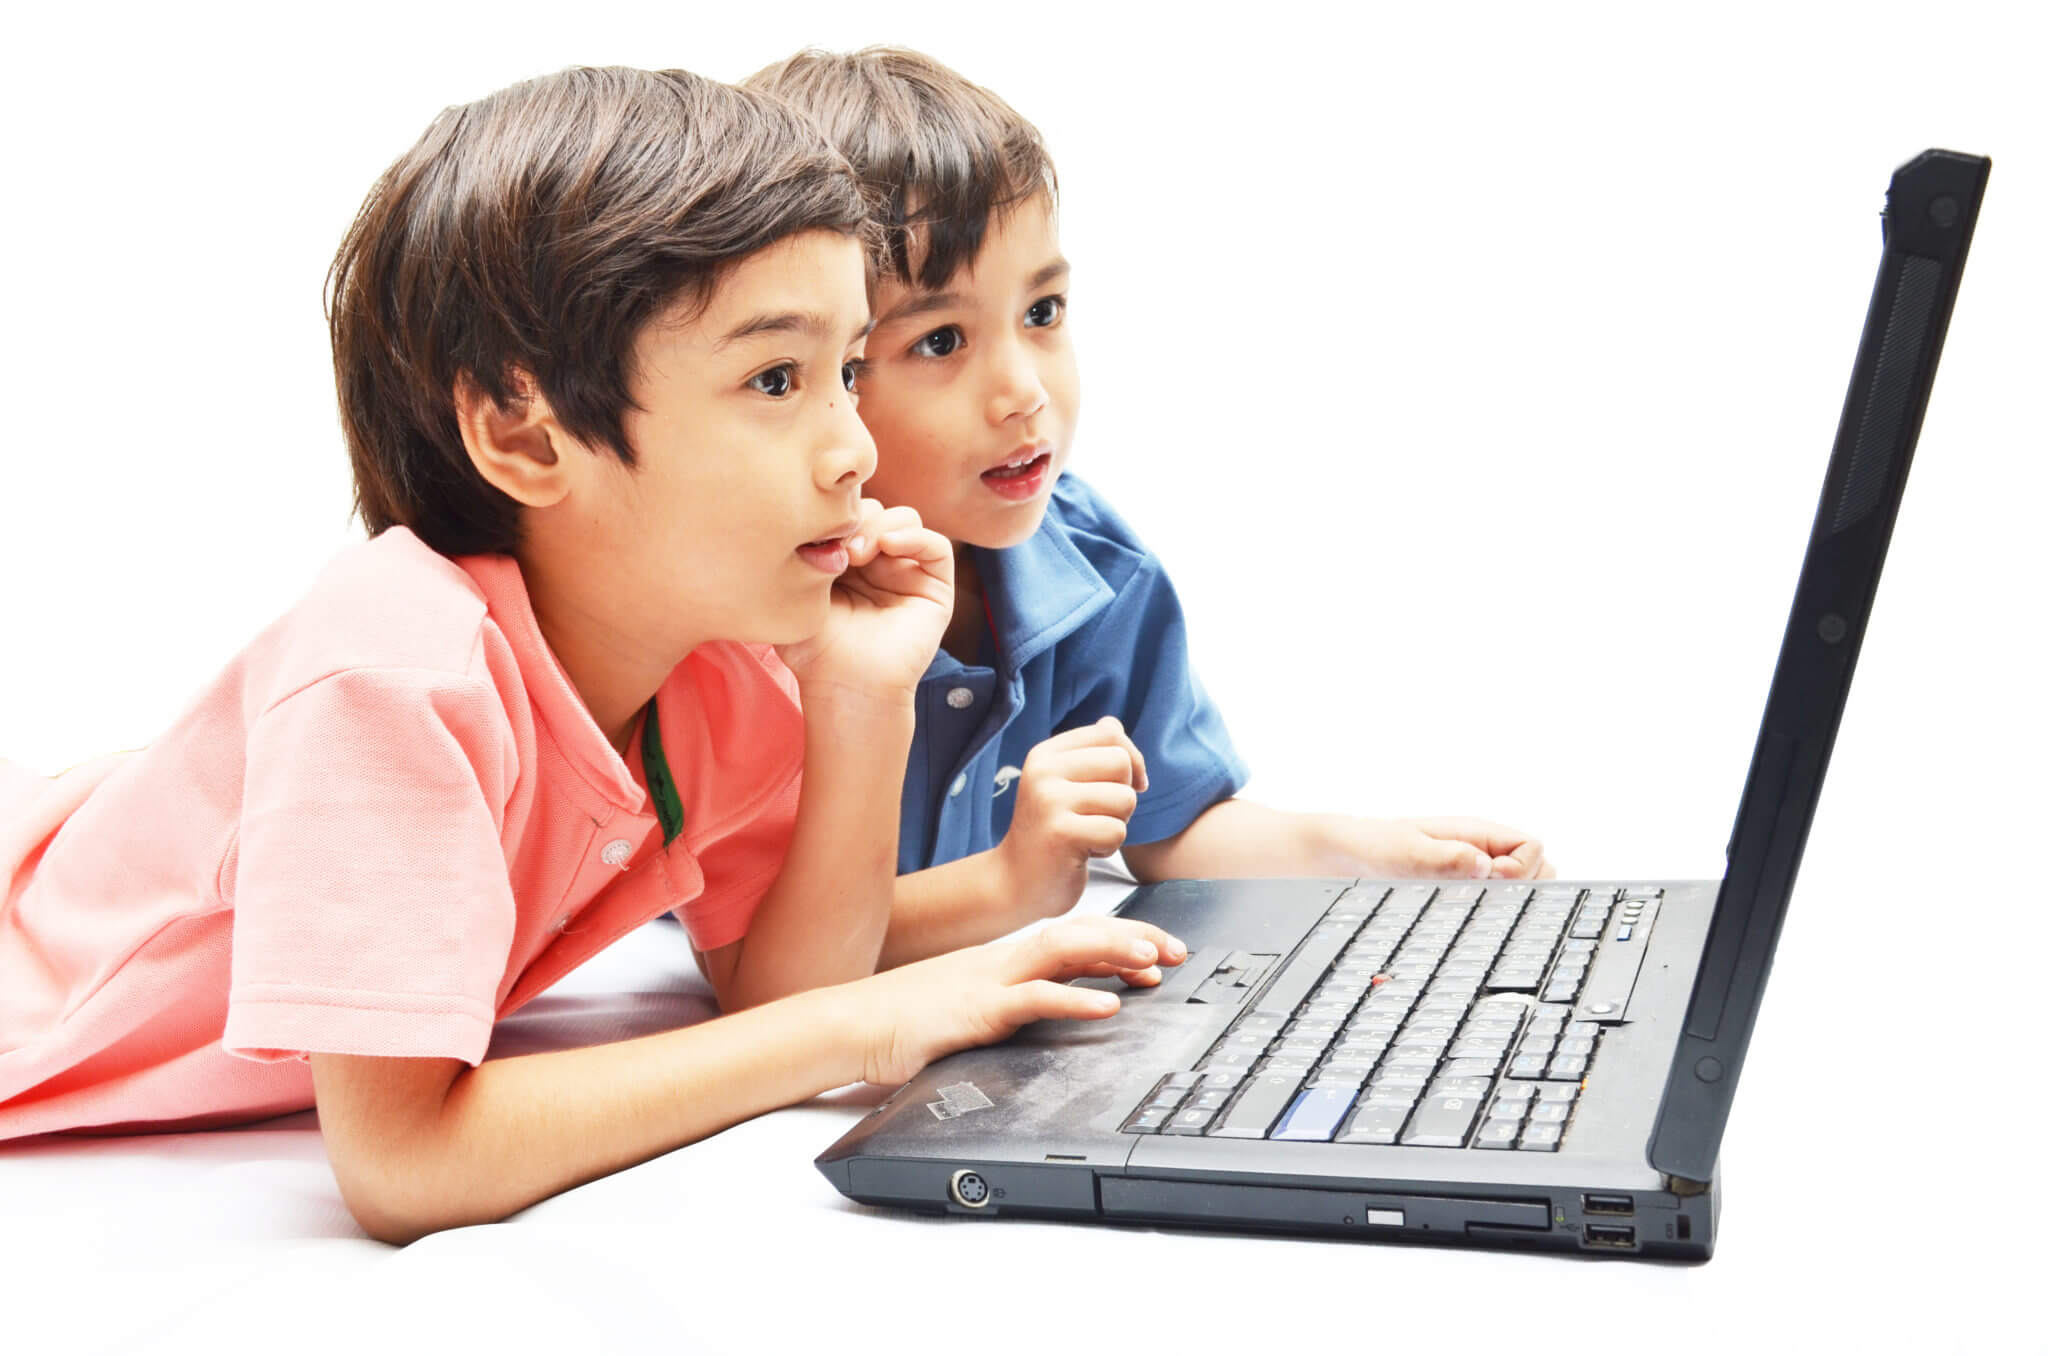 worksheet Online Learning For Kids 5 ways to protect kids online from dangerous and inappropriate young children are becoming increasingly engaged in media content making it more important than